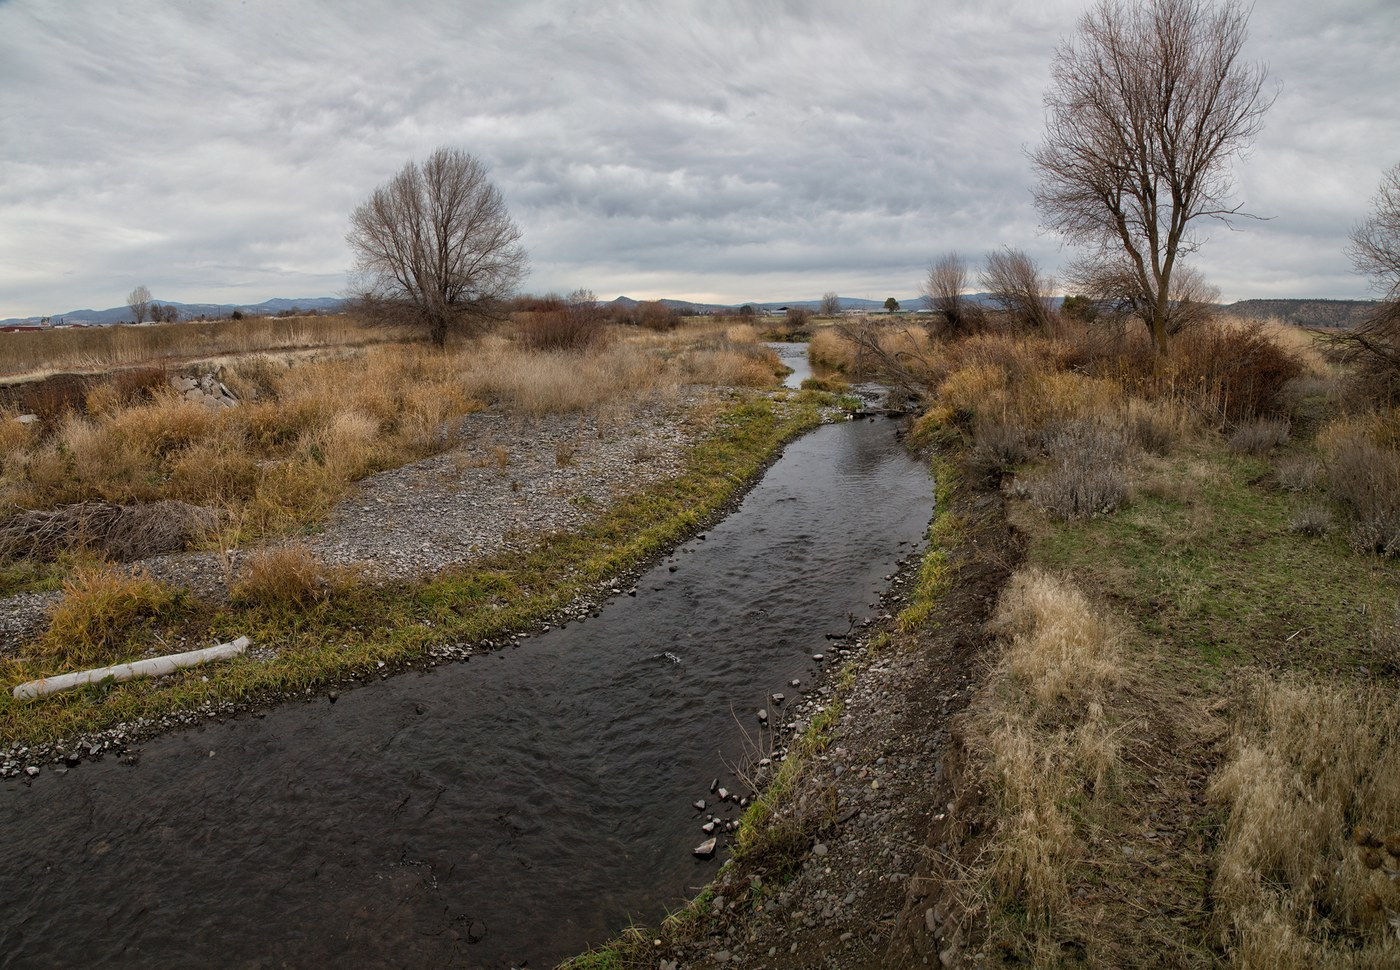 McKay Creek flows through a Land Trust Preserve in Prineville. Photo: Jay Mather